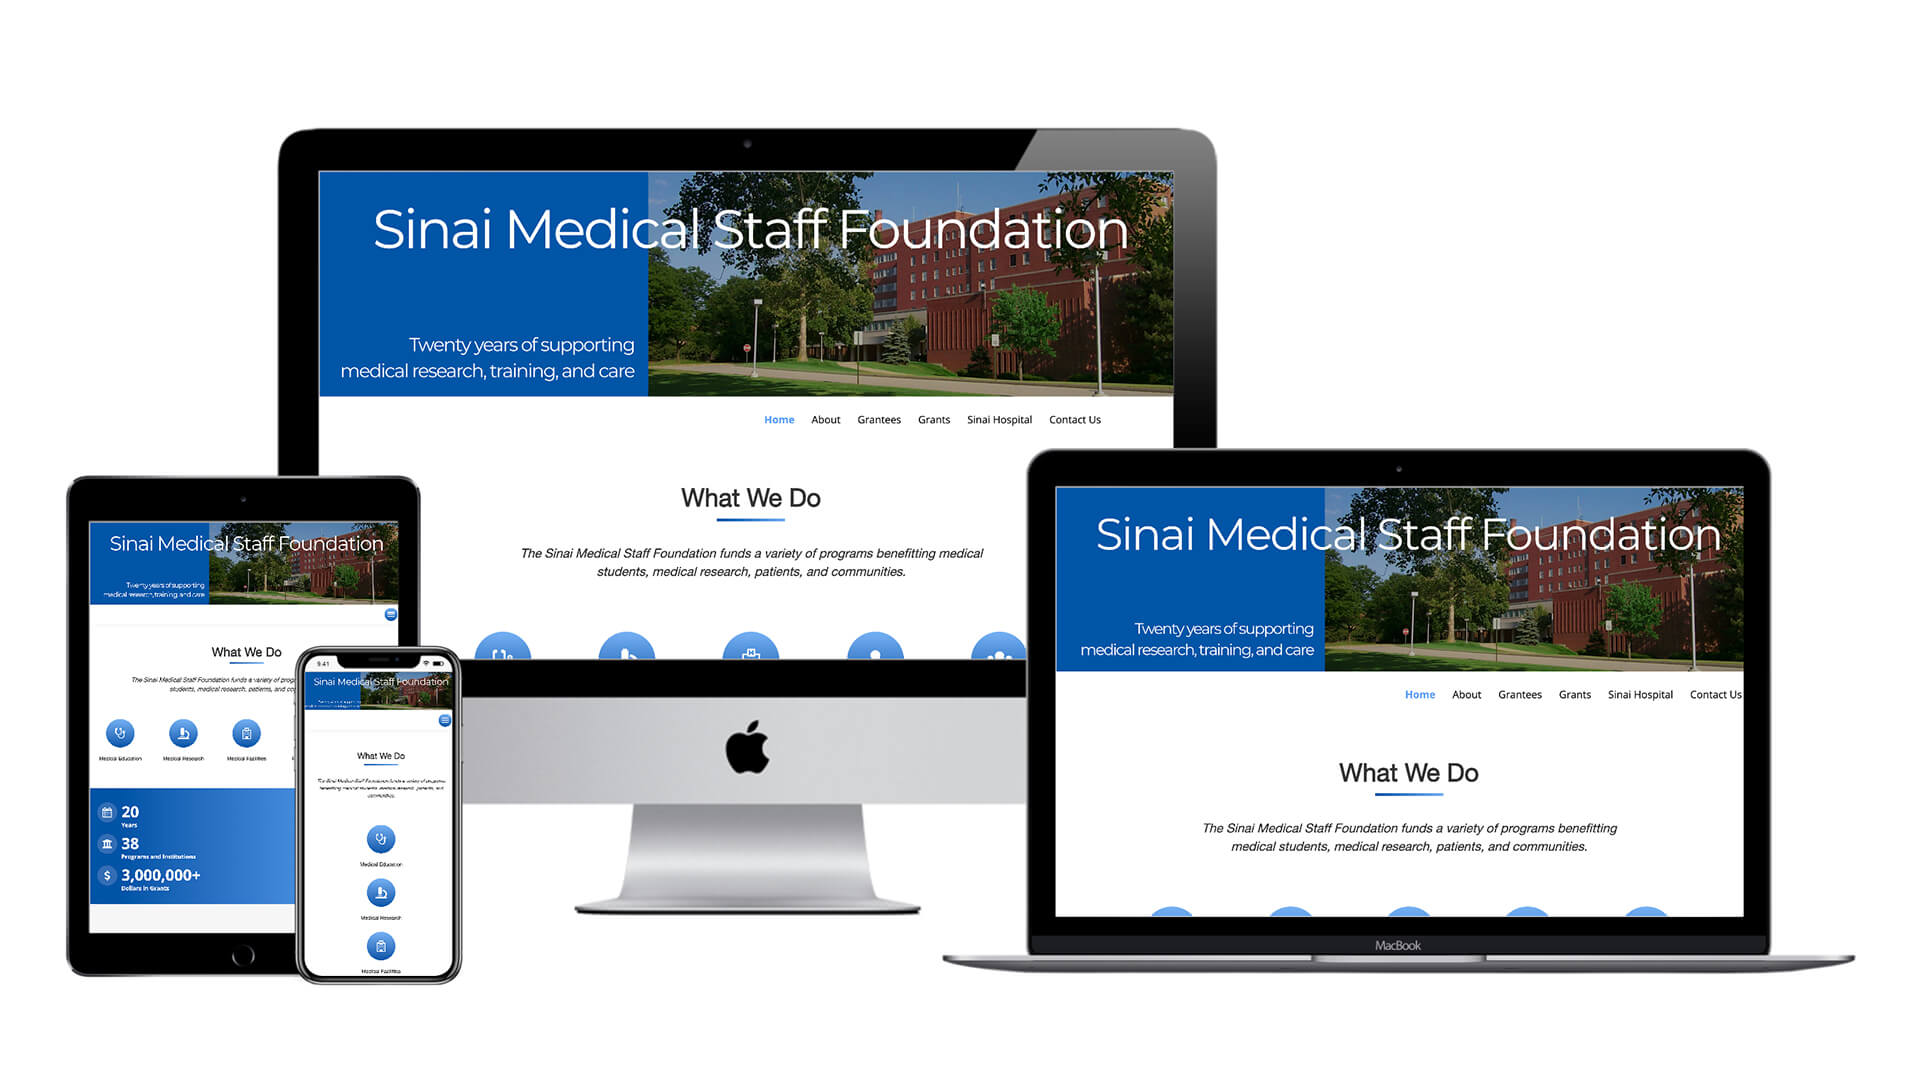 Graphic showing the website created by Clamshell Communications for the Sinai Medical Staff Foundation on four device screens